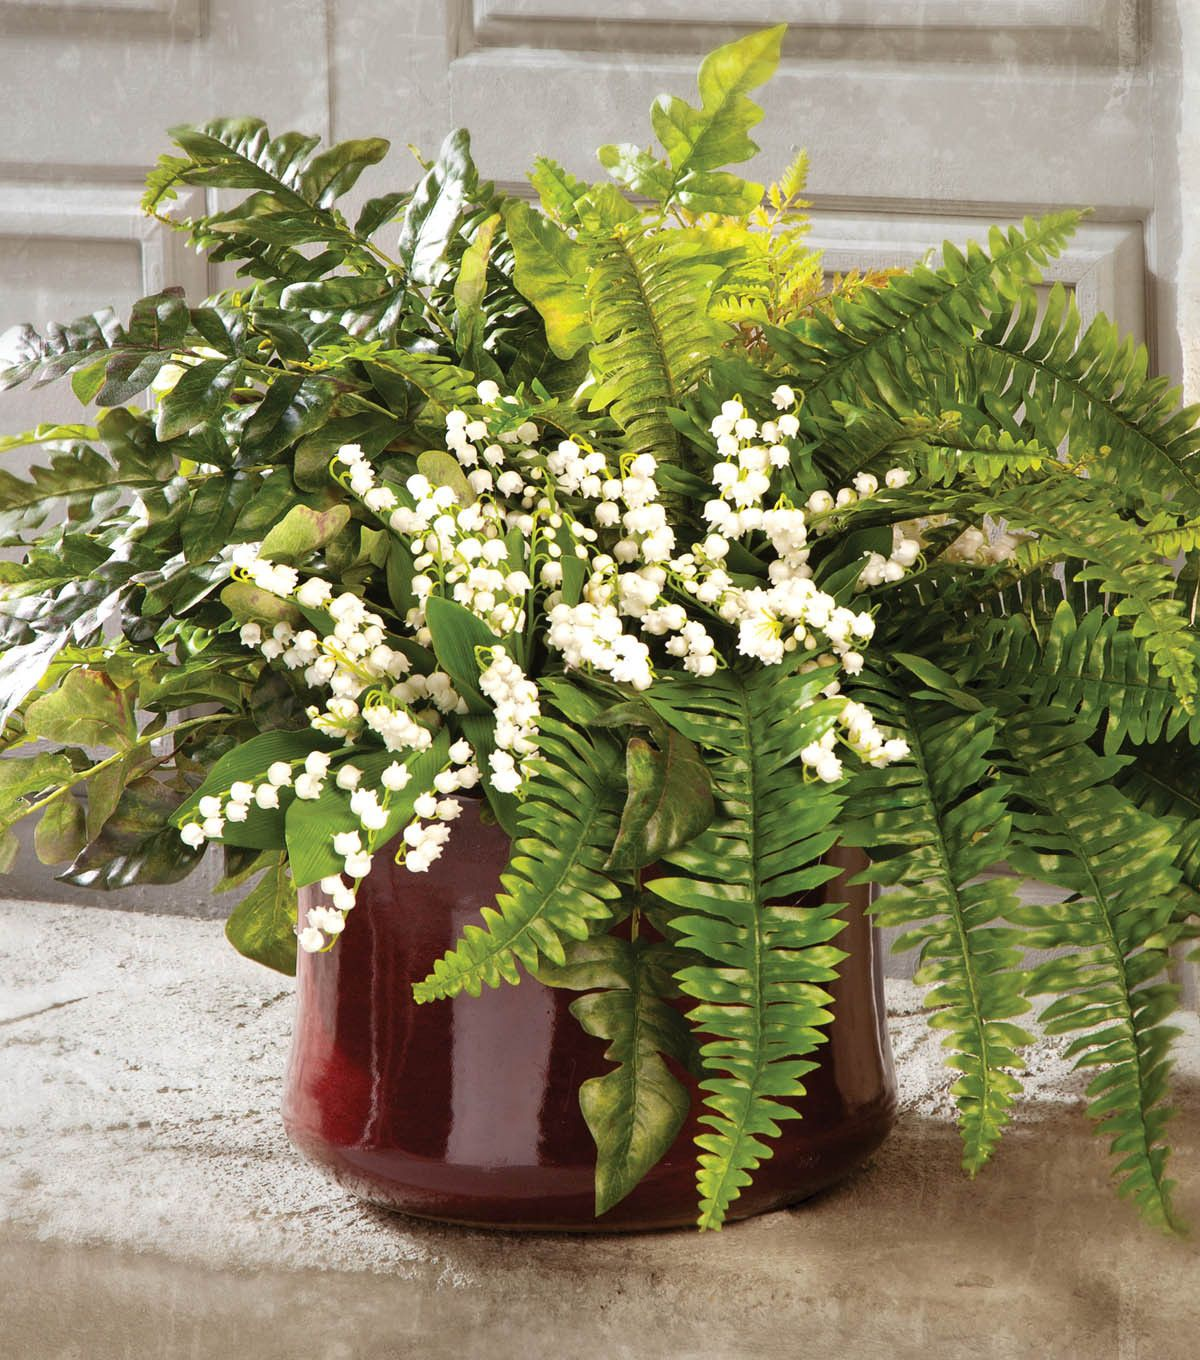 Lily Of The Valley Wedding Flowers: Potted Ferns With Lily Of The Valley Centerpiece